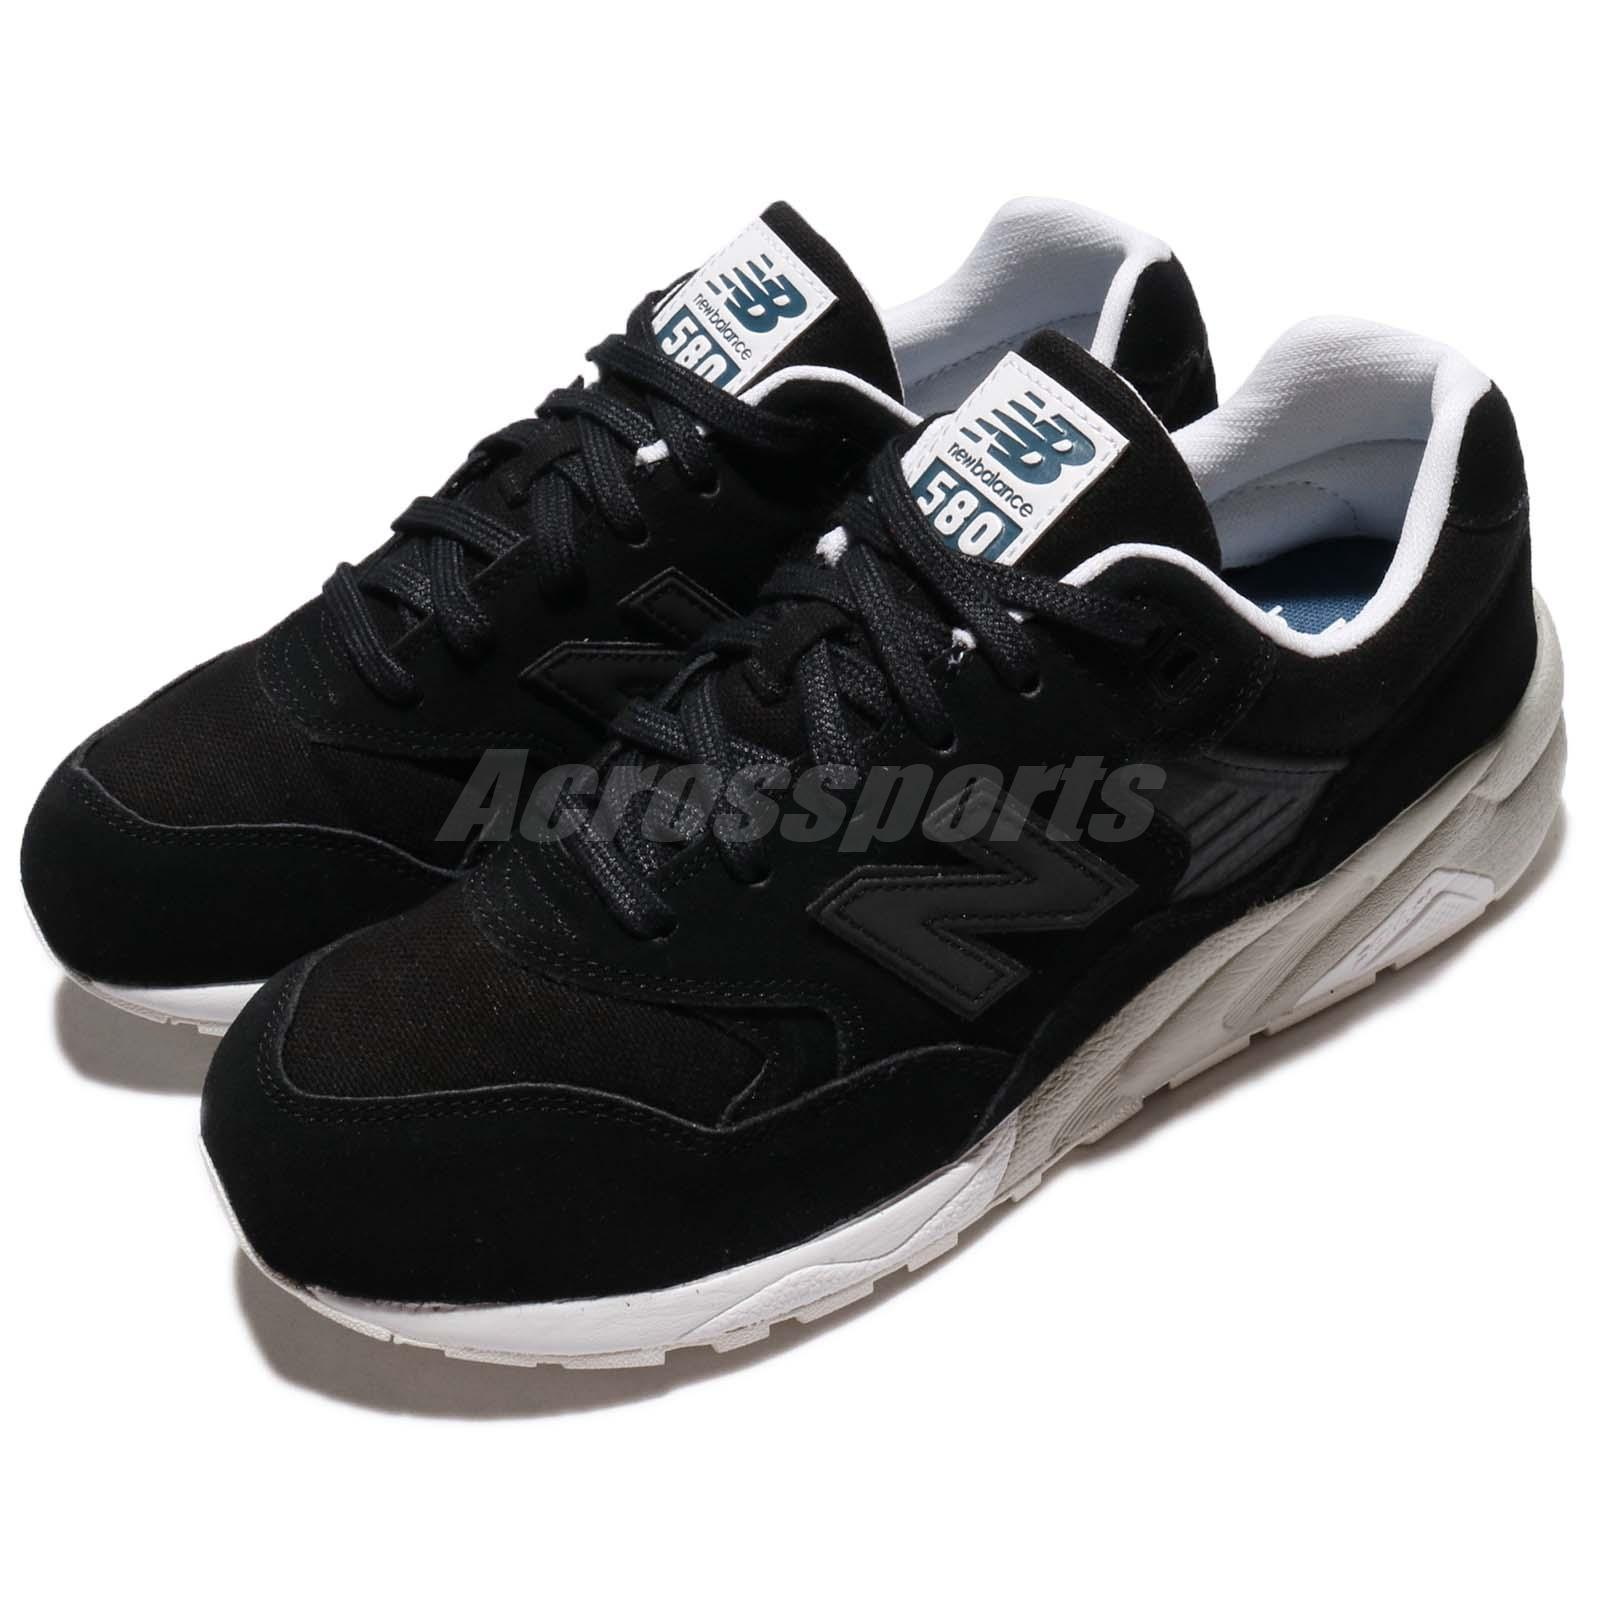 Détails sur New Balance MRT580EB D Black Grey Running Shoes Lifestyle Sneakers MRT580EBD